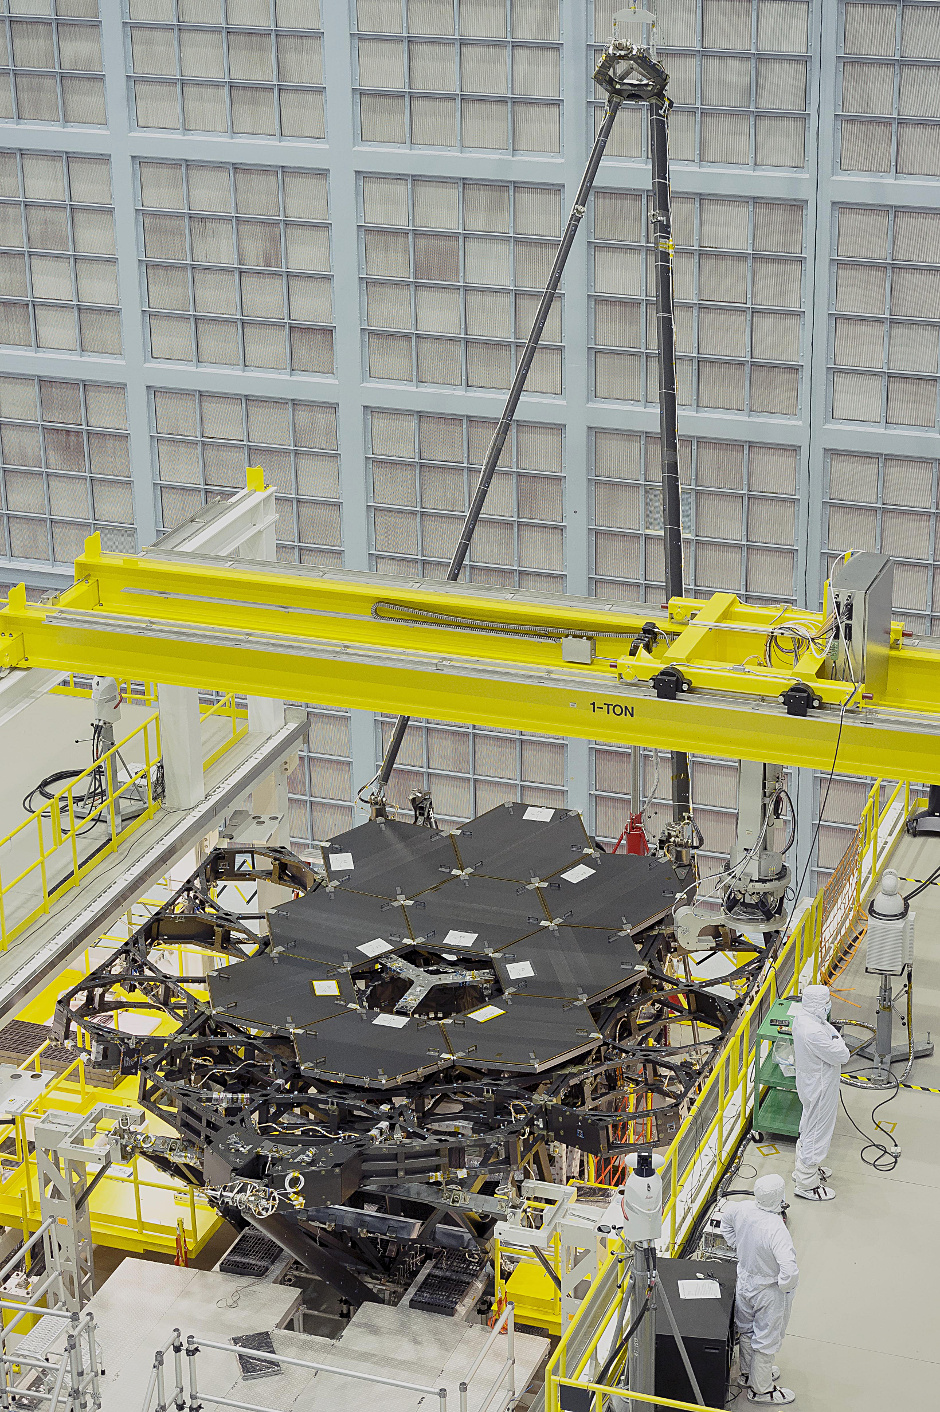 Nine of the James Webb Space Telescope's 18 primary flight mirrors have been installed on the telescope structure. This marks the halfway point in the James Webb Space Telescope's primary mirror installation. Image credits: NASA's Goddard Space Flight Center/Chris Gunn.